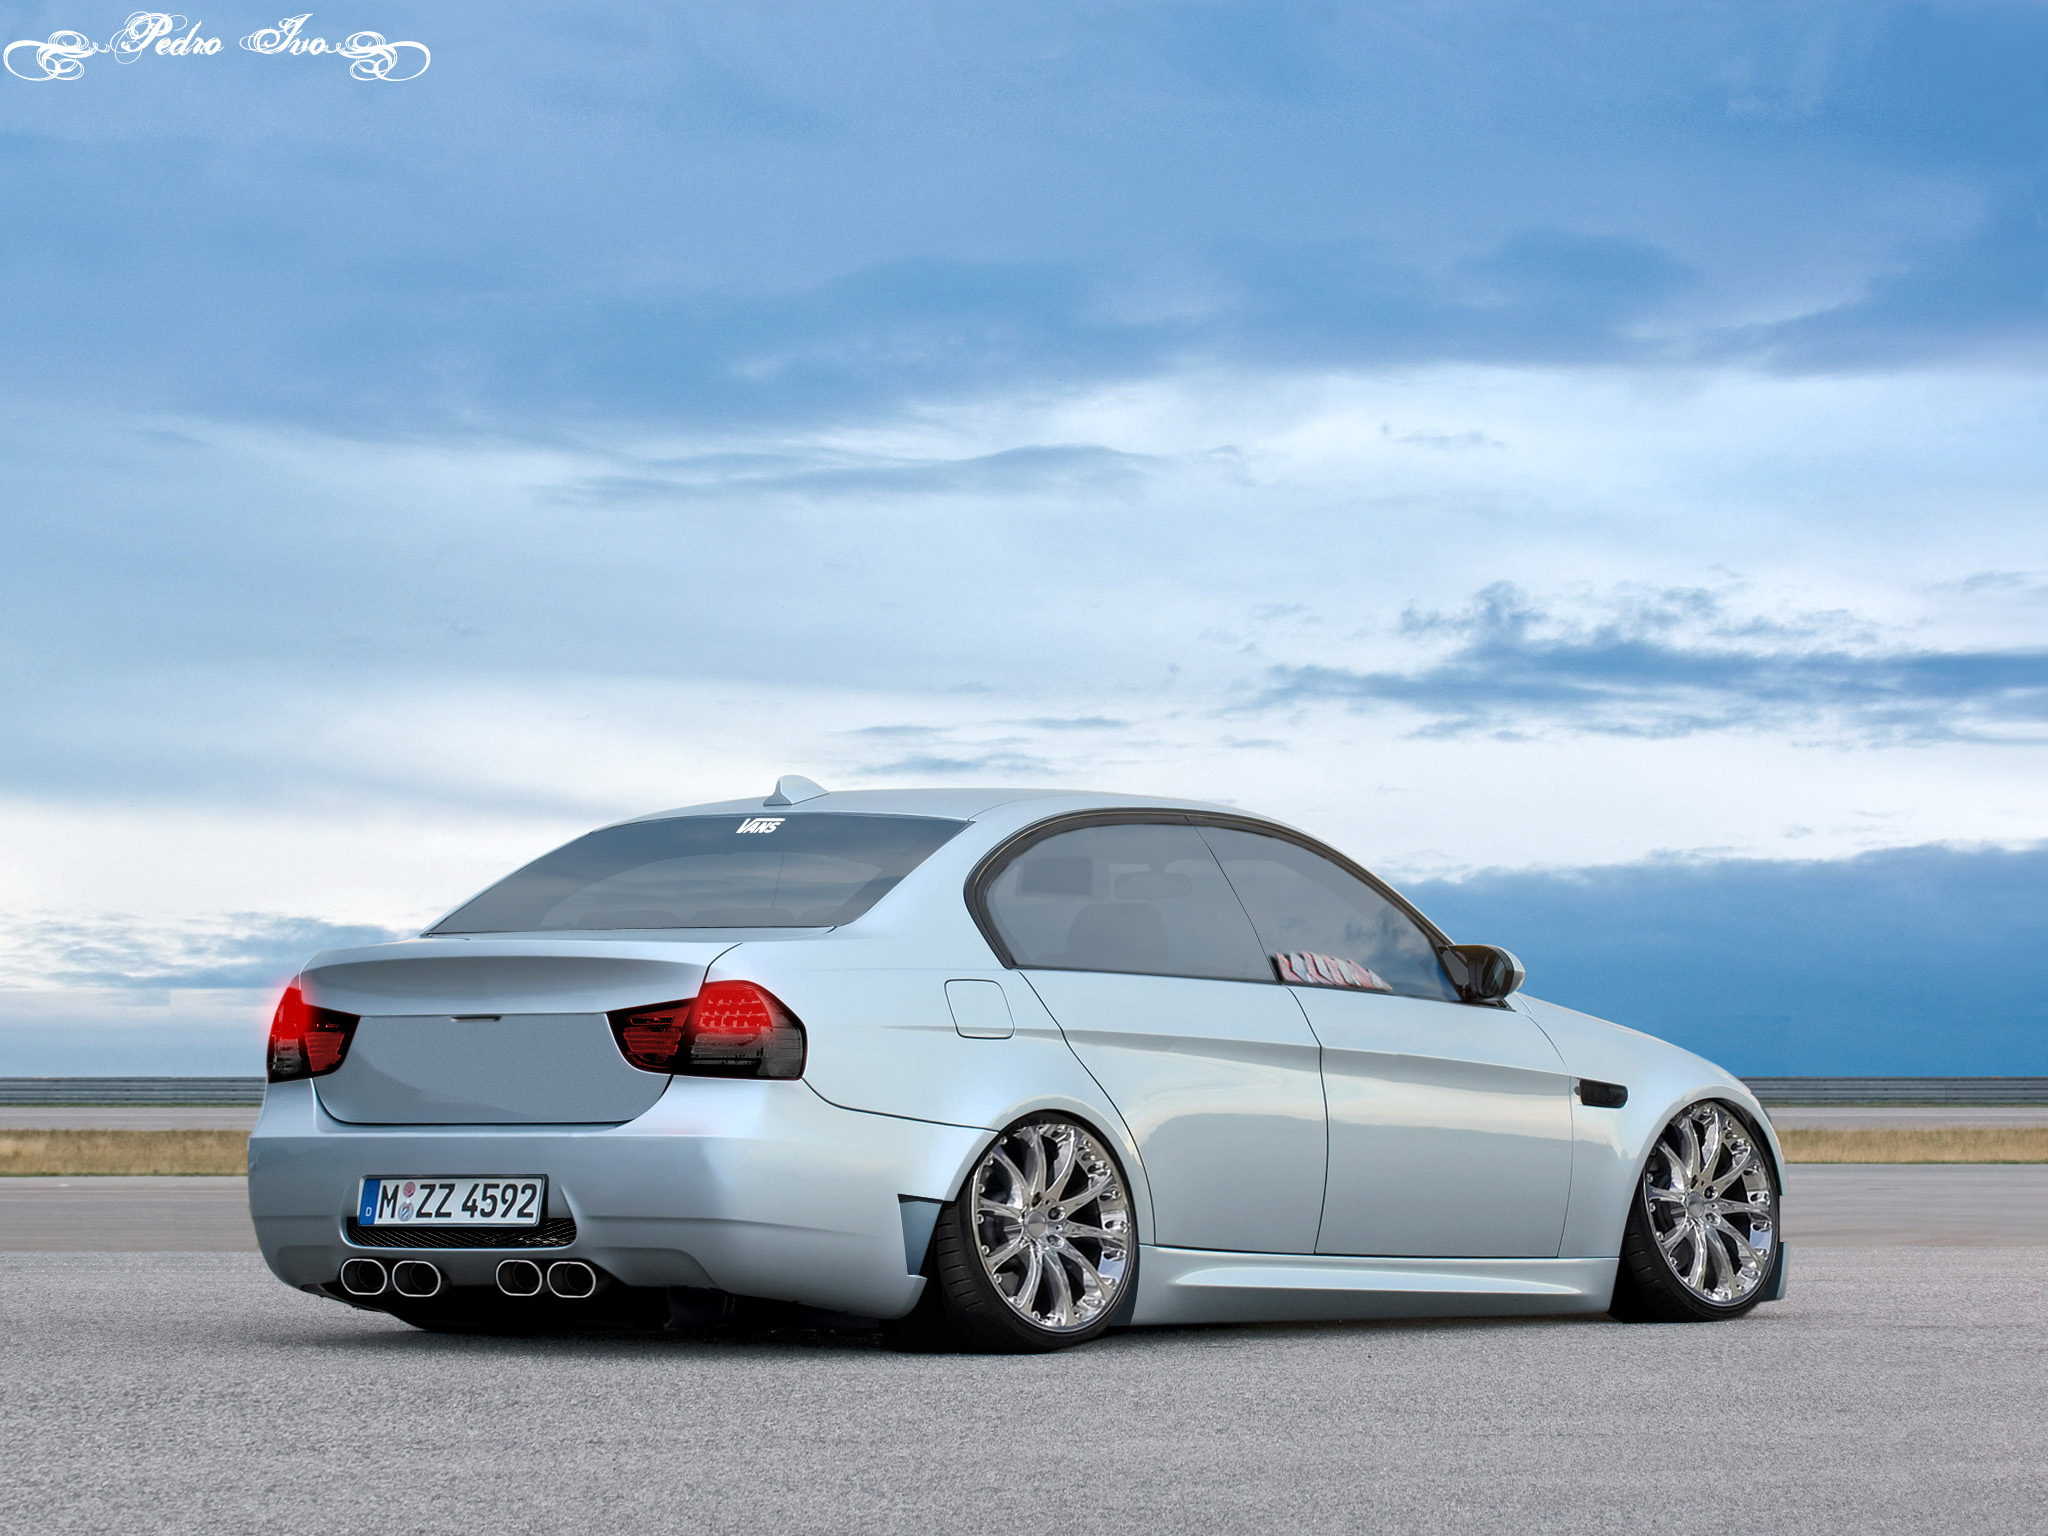 bmw m3 tuning bmw auto cars. Black Bedroom Furniture Sets. Home Design Ideas